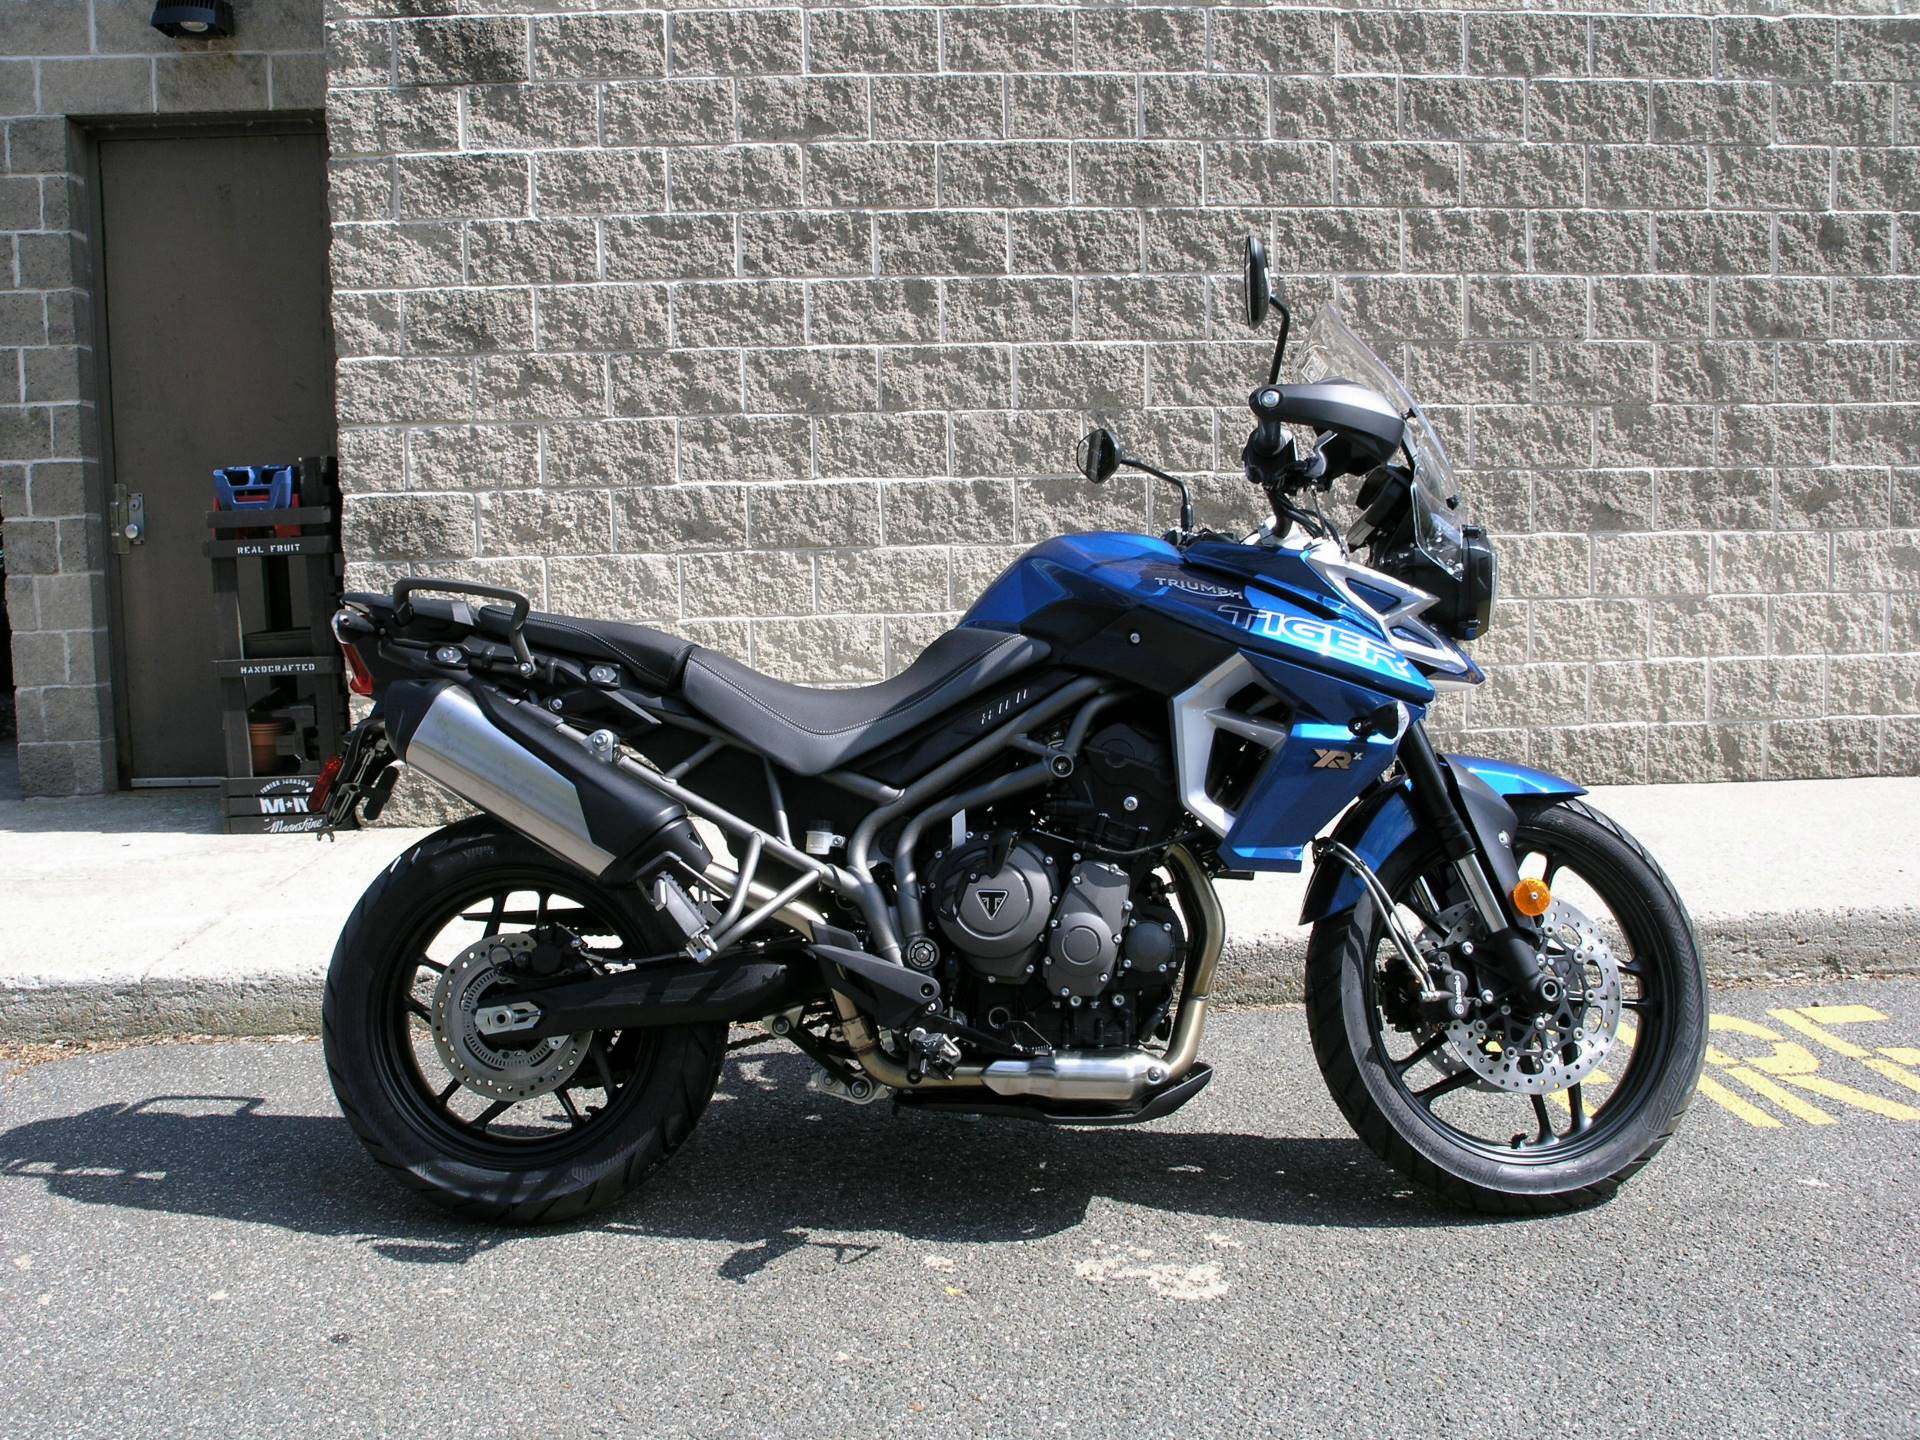 2018 Triumph Tiger 800 XRx Low in Enfield, Connecticut